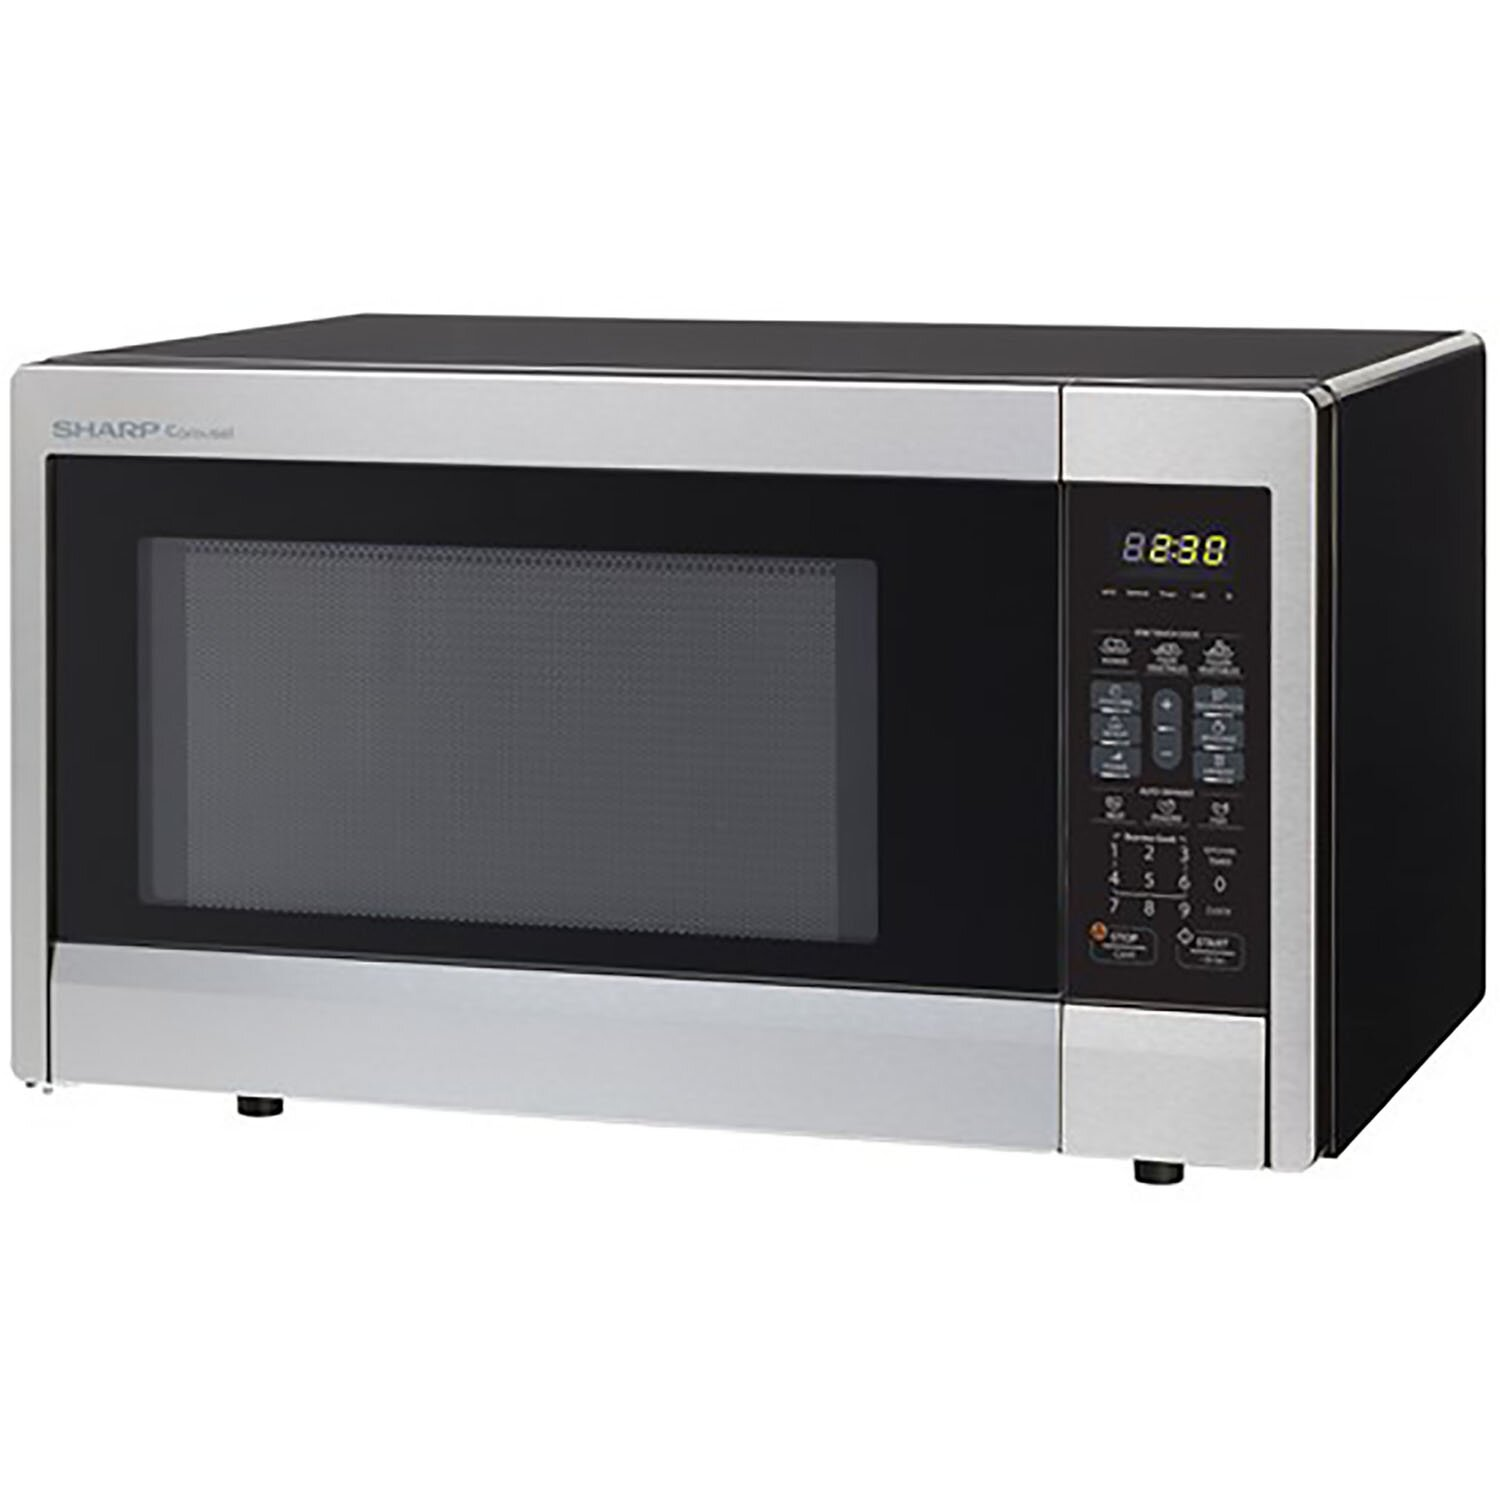 Countertop Microwave Sharp : Cu. Ft. 1000W Countertop Microwave by Sharp